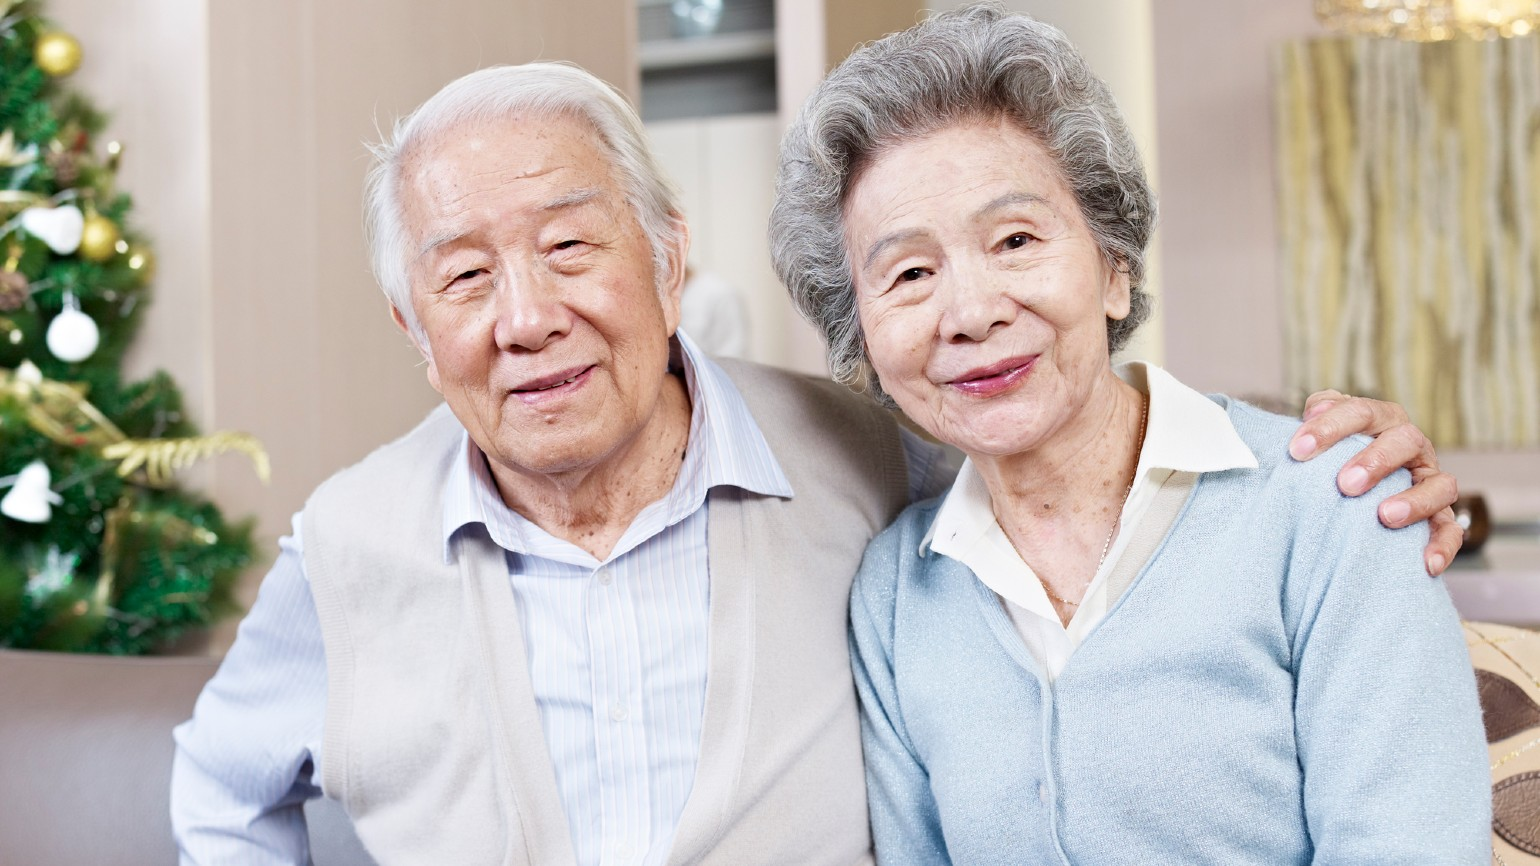 An elderly man with his arm wrapped around his wife at home